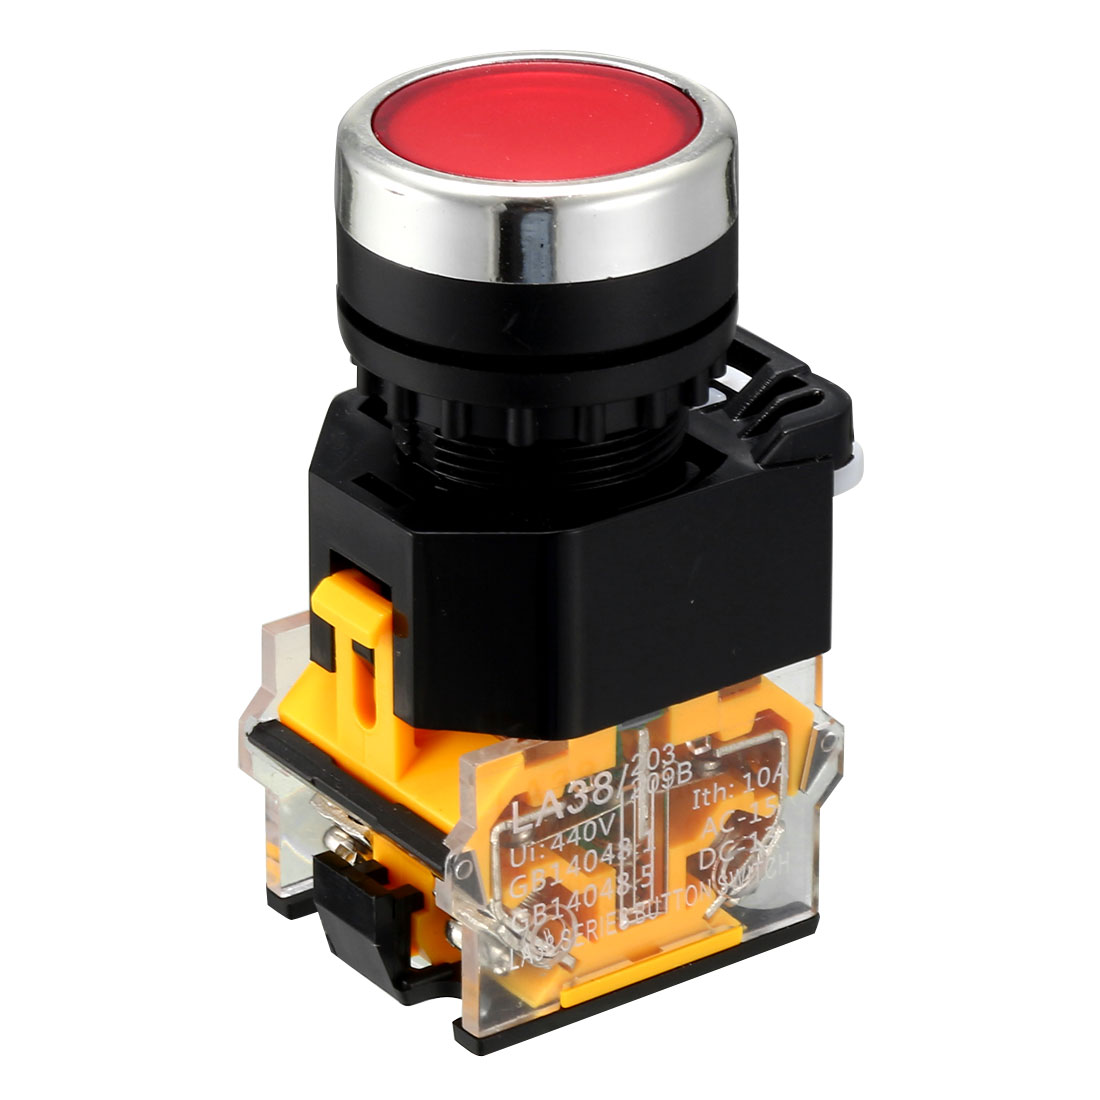 AC400V 10A 22mm Dia Thread Panel Mount DPST 4 Screw Terminal Momentary Red Plastic Cap Push Button Switch